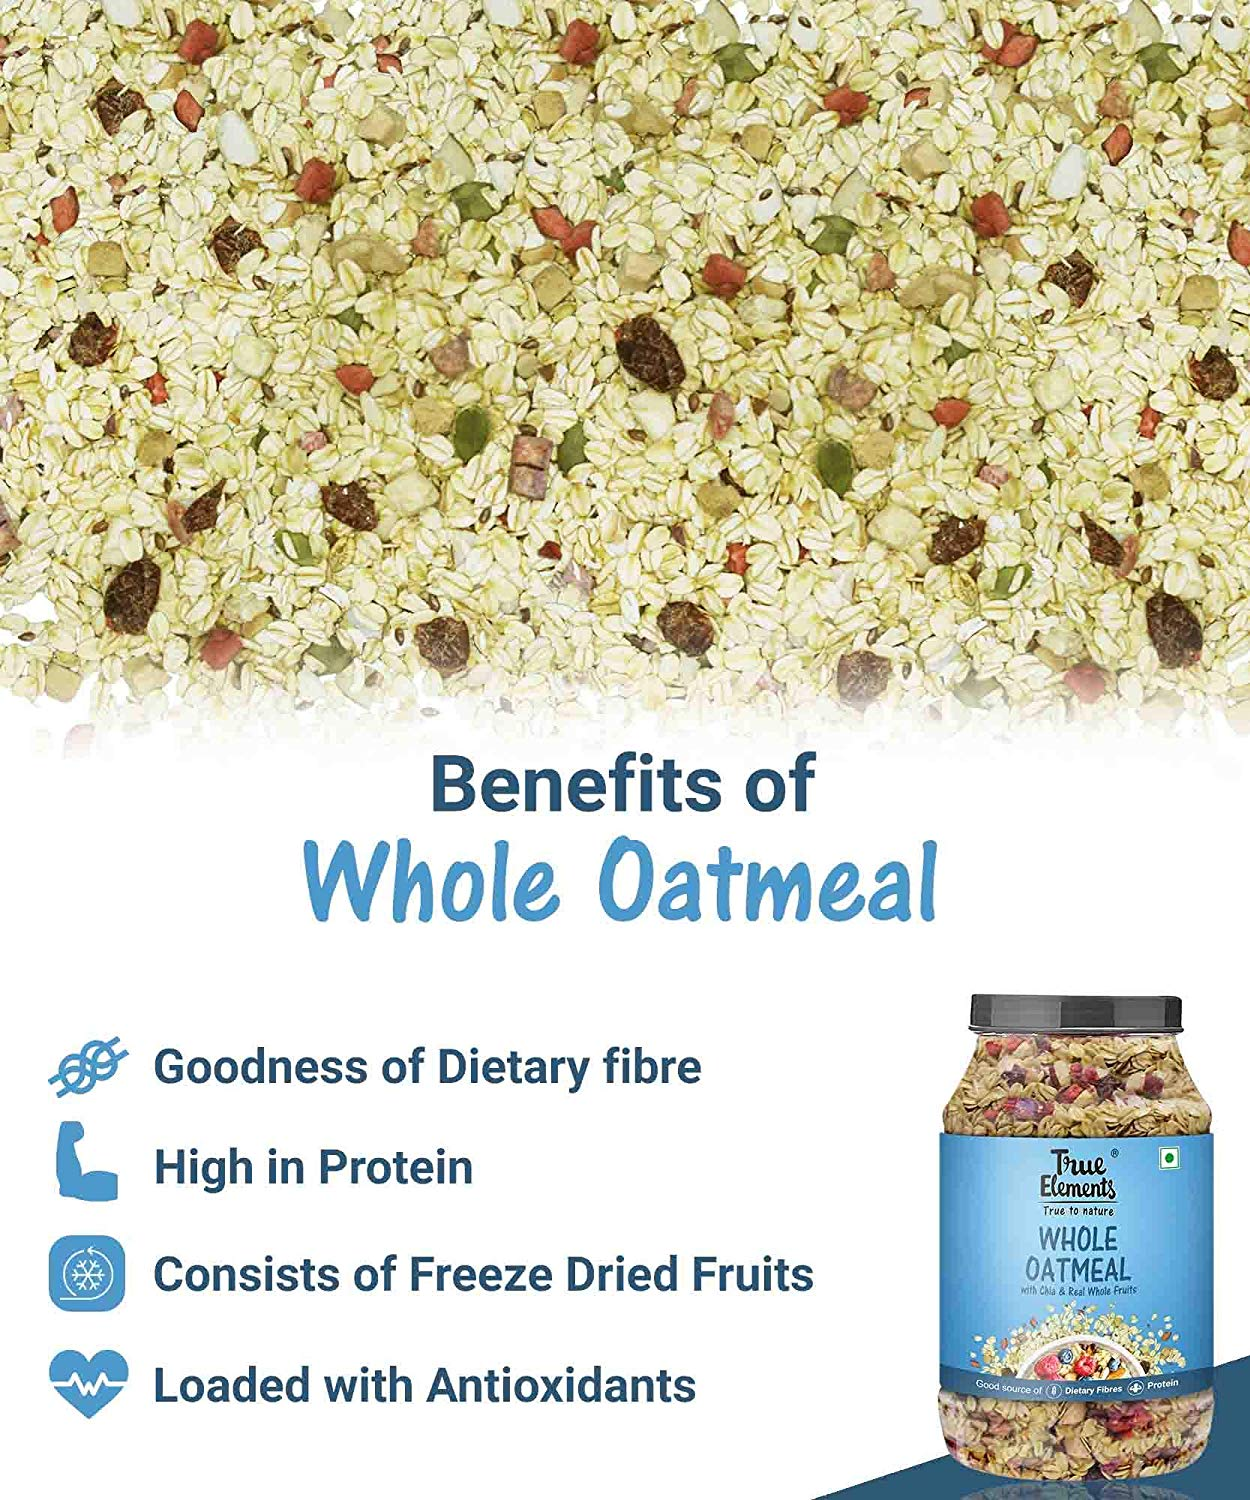 True Elements Whole Oatmeal With Chia And Real Whole Fruits 1 Kg